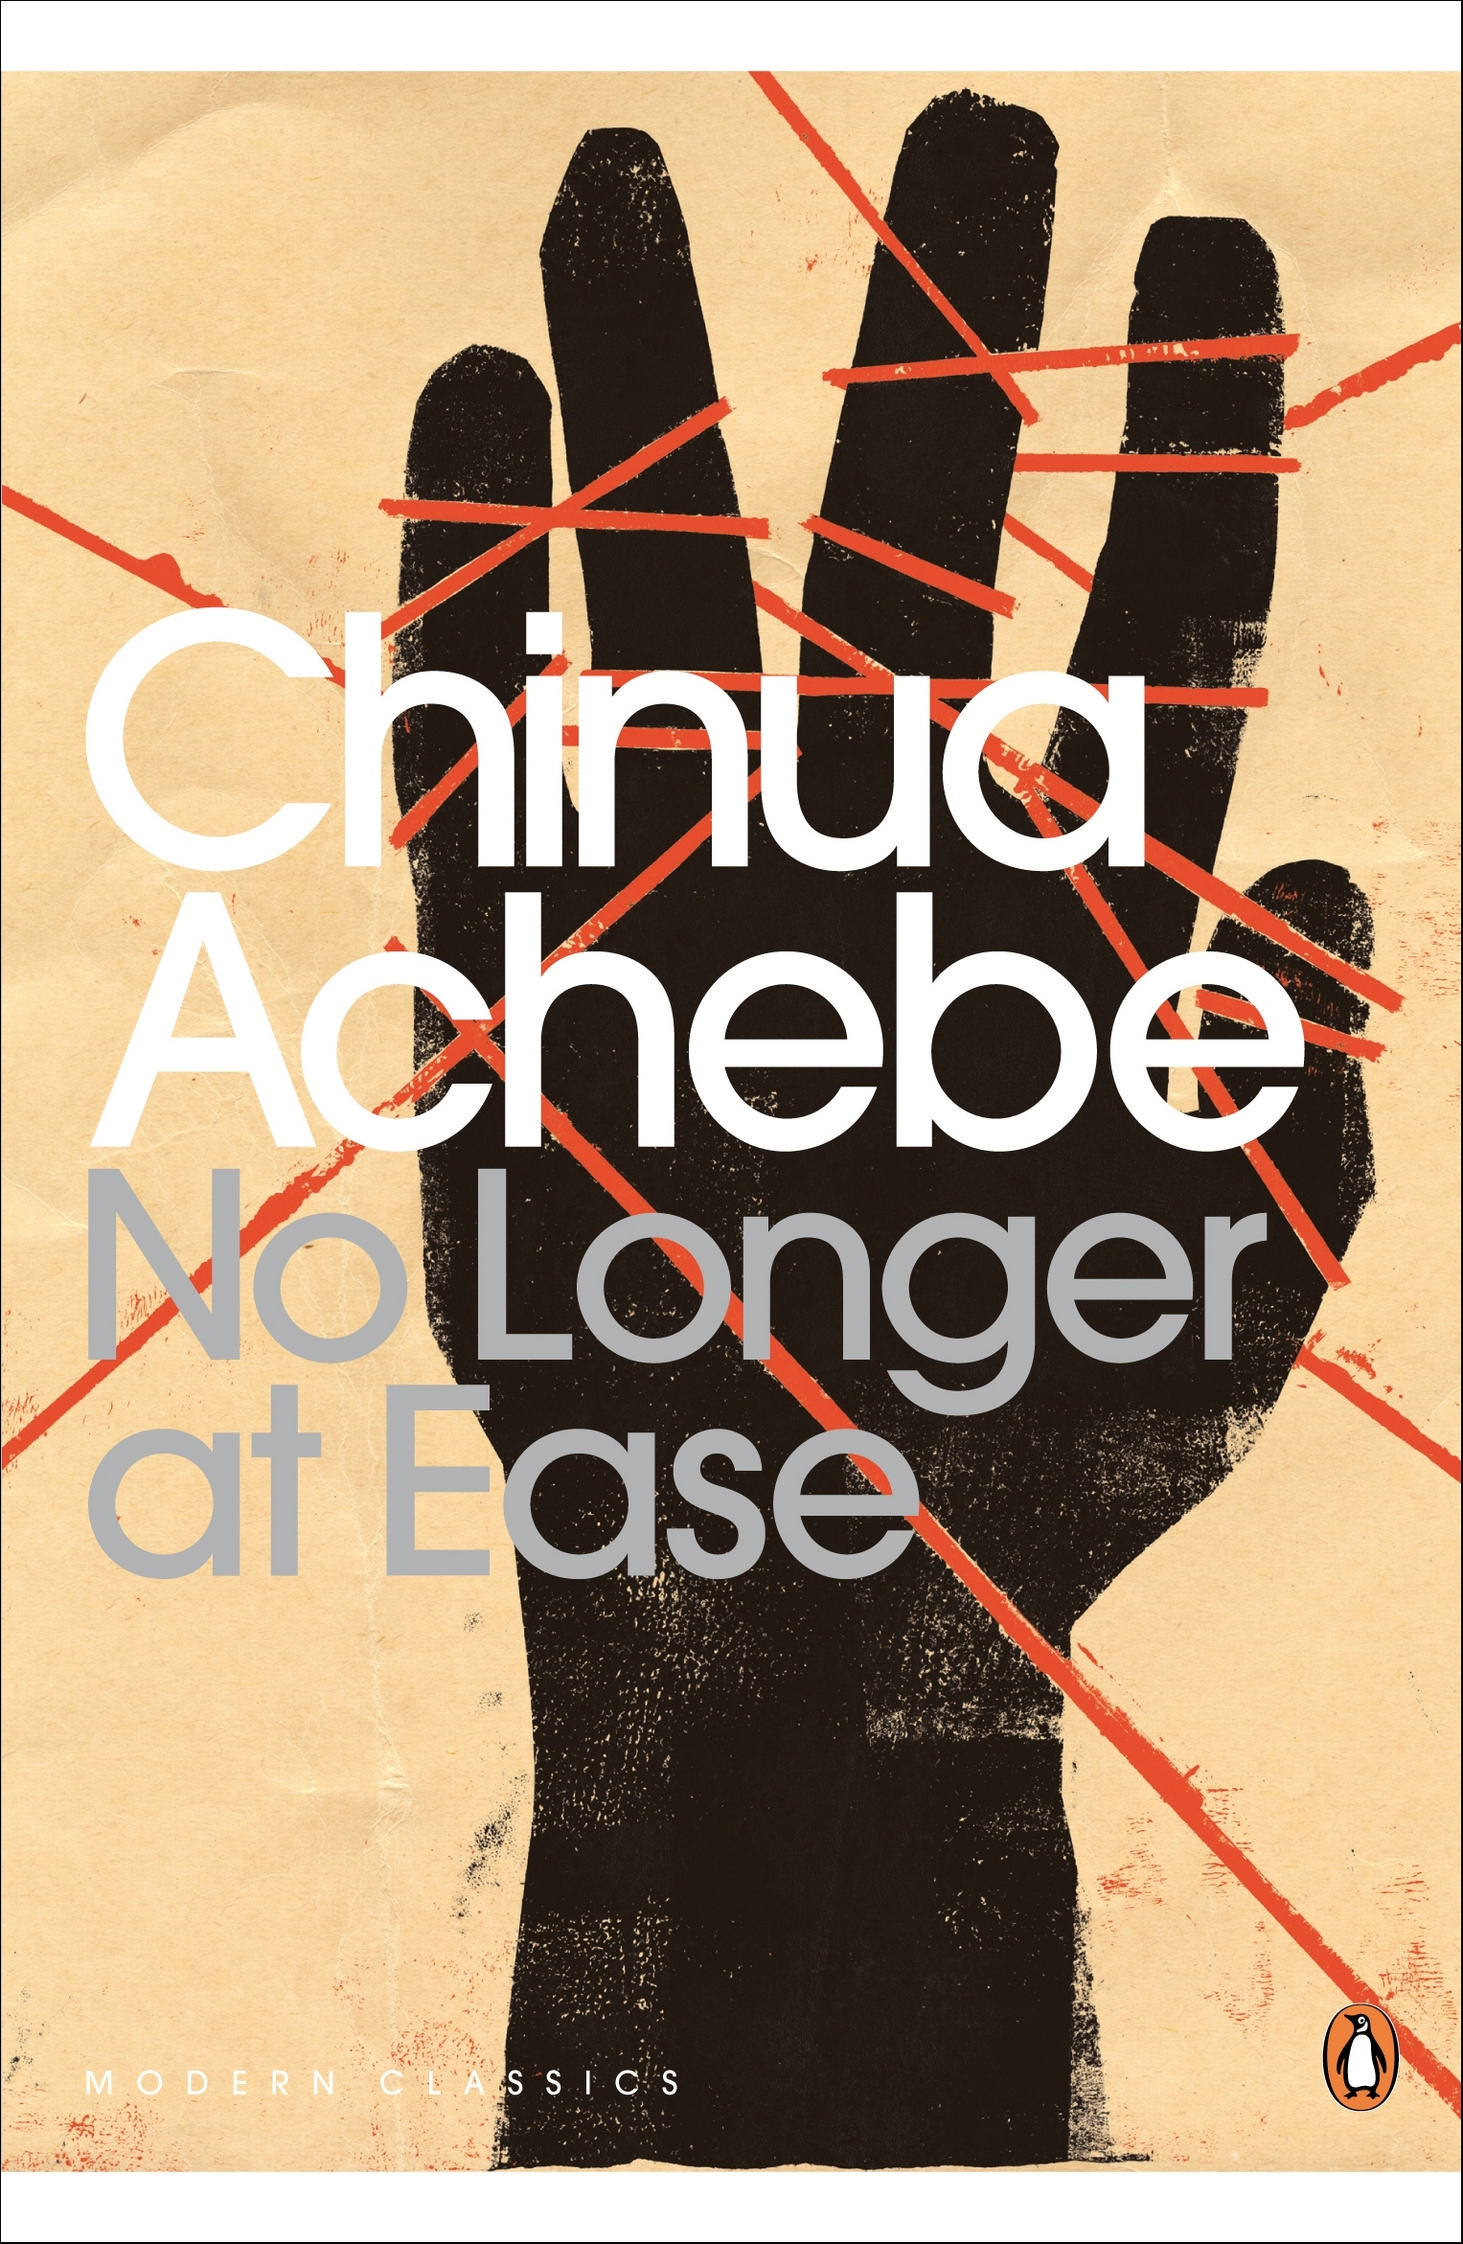 chinua achebes novel things fall apart theology religion essay Things fall apart and chinua achebe essay art as instrument of change things fall apart, by chinua achebe, is a very rich novel set in a nigerian village at the outset of the 20th century, it is the story of okonkwo, an ibo warrior and clan leader struggling to come to terms with the upheaval of his cherished way of life.